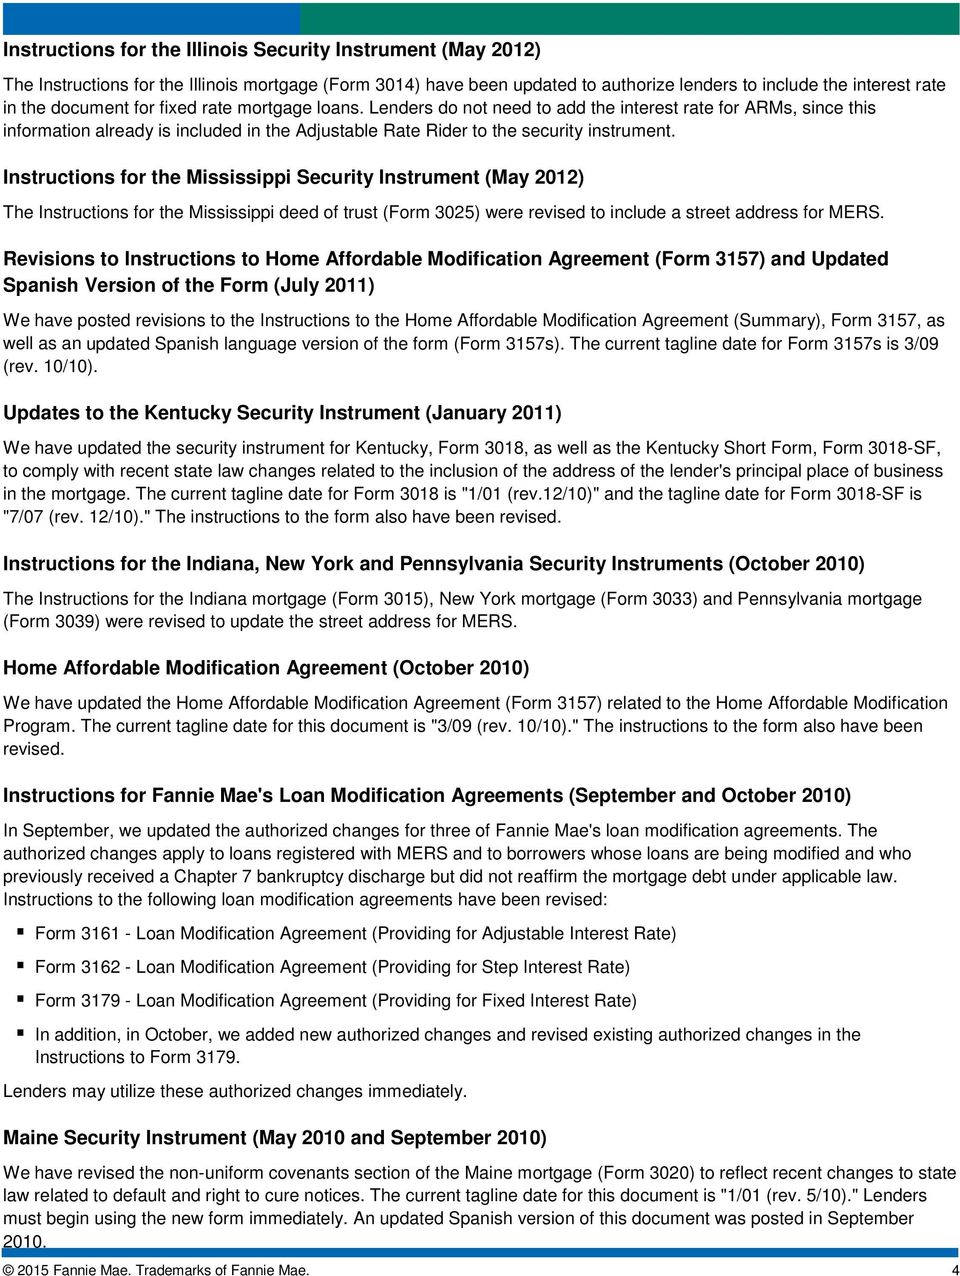 Legal Documents News Updates Archive September Pdf